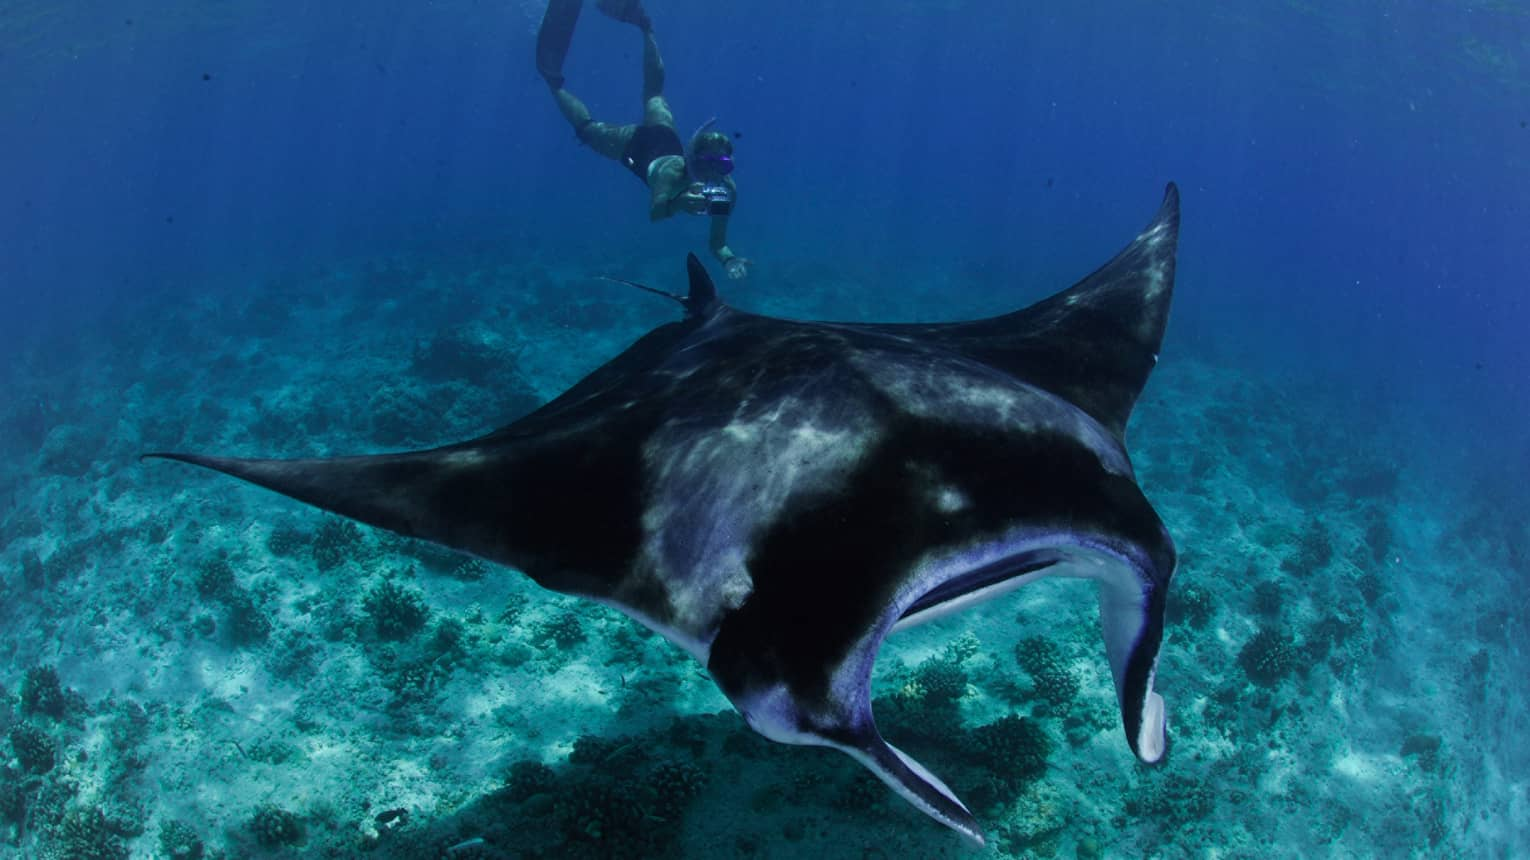 Snorkeller with underwater camera takes photo of large manta ray in lagoon